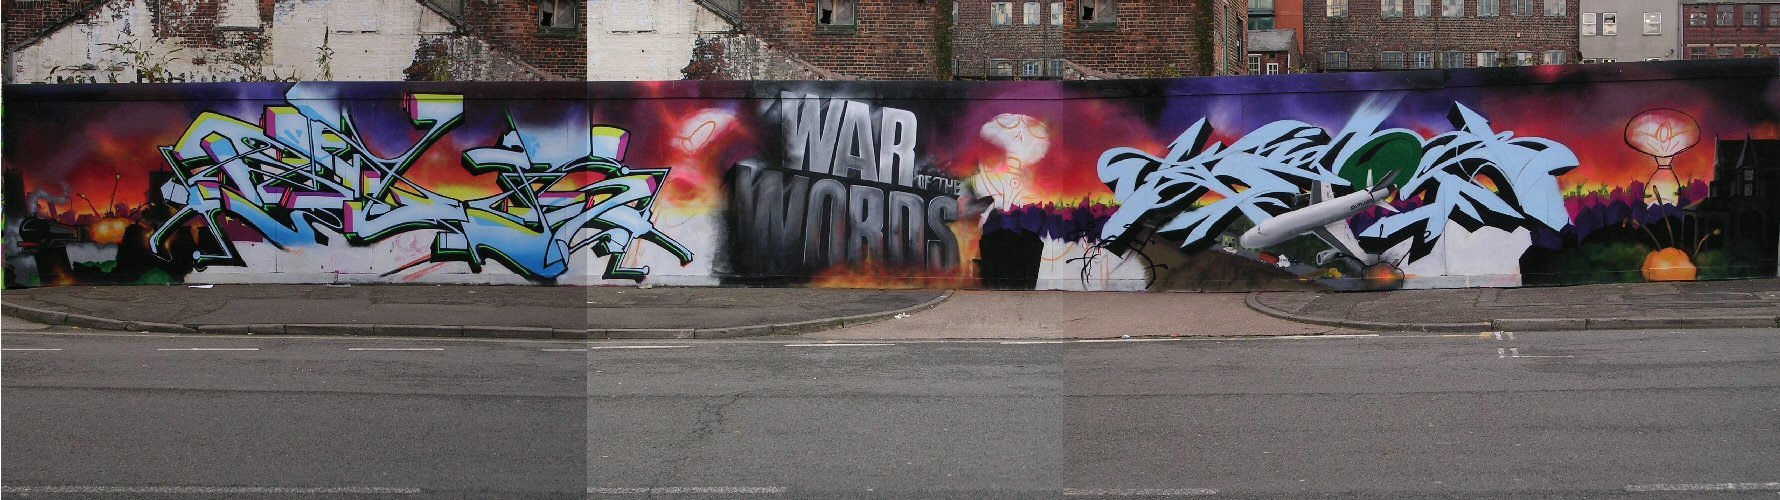 War of Words panorama 29/10/12